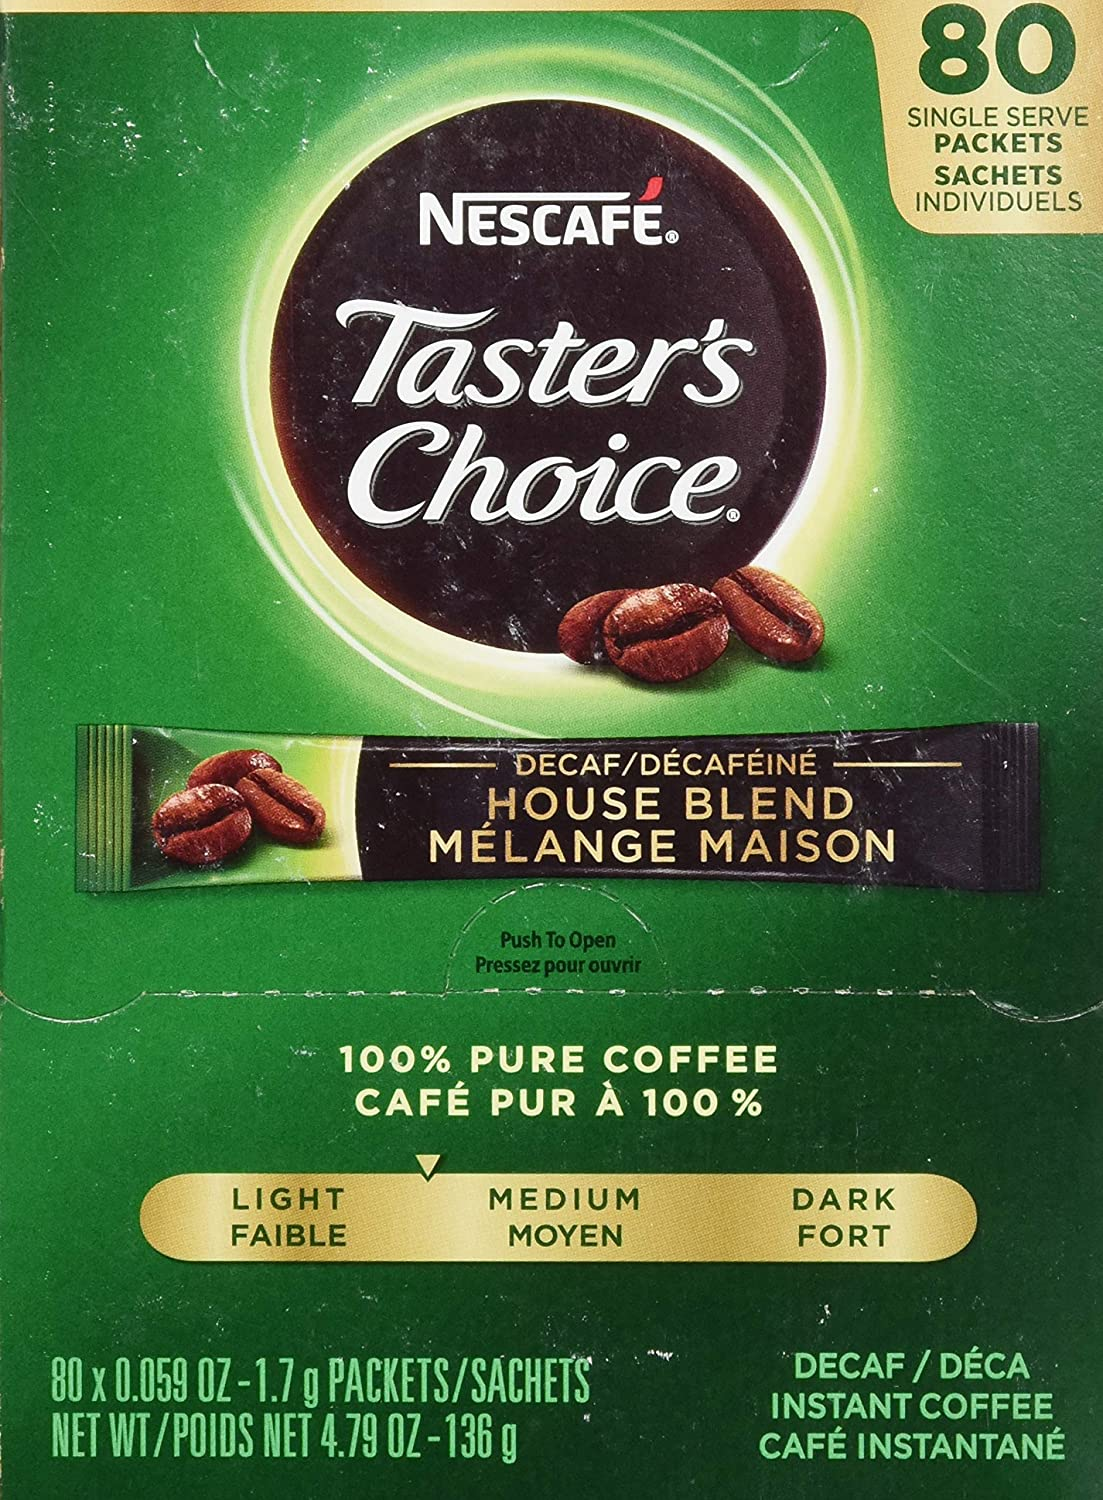 Nescafe Taster's Choice Instant Coffee, Decaffeinated, 80 Count Single Stick